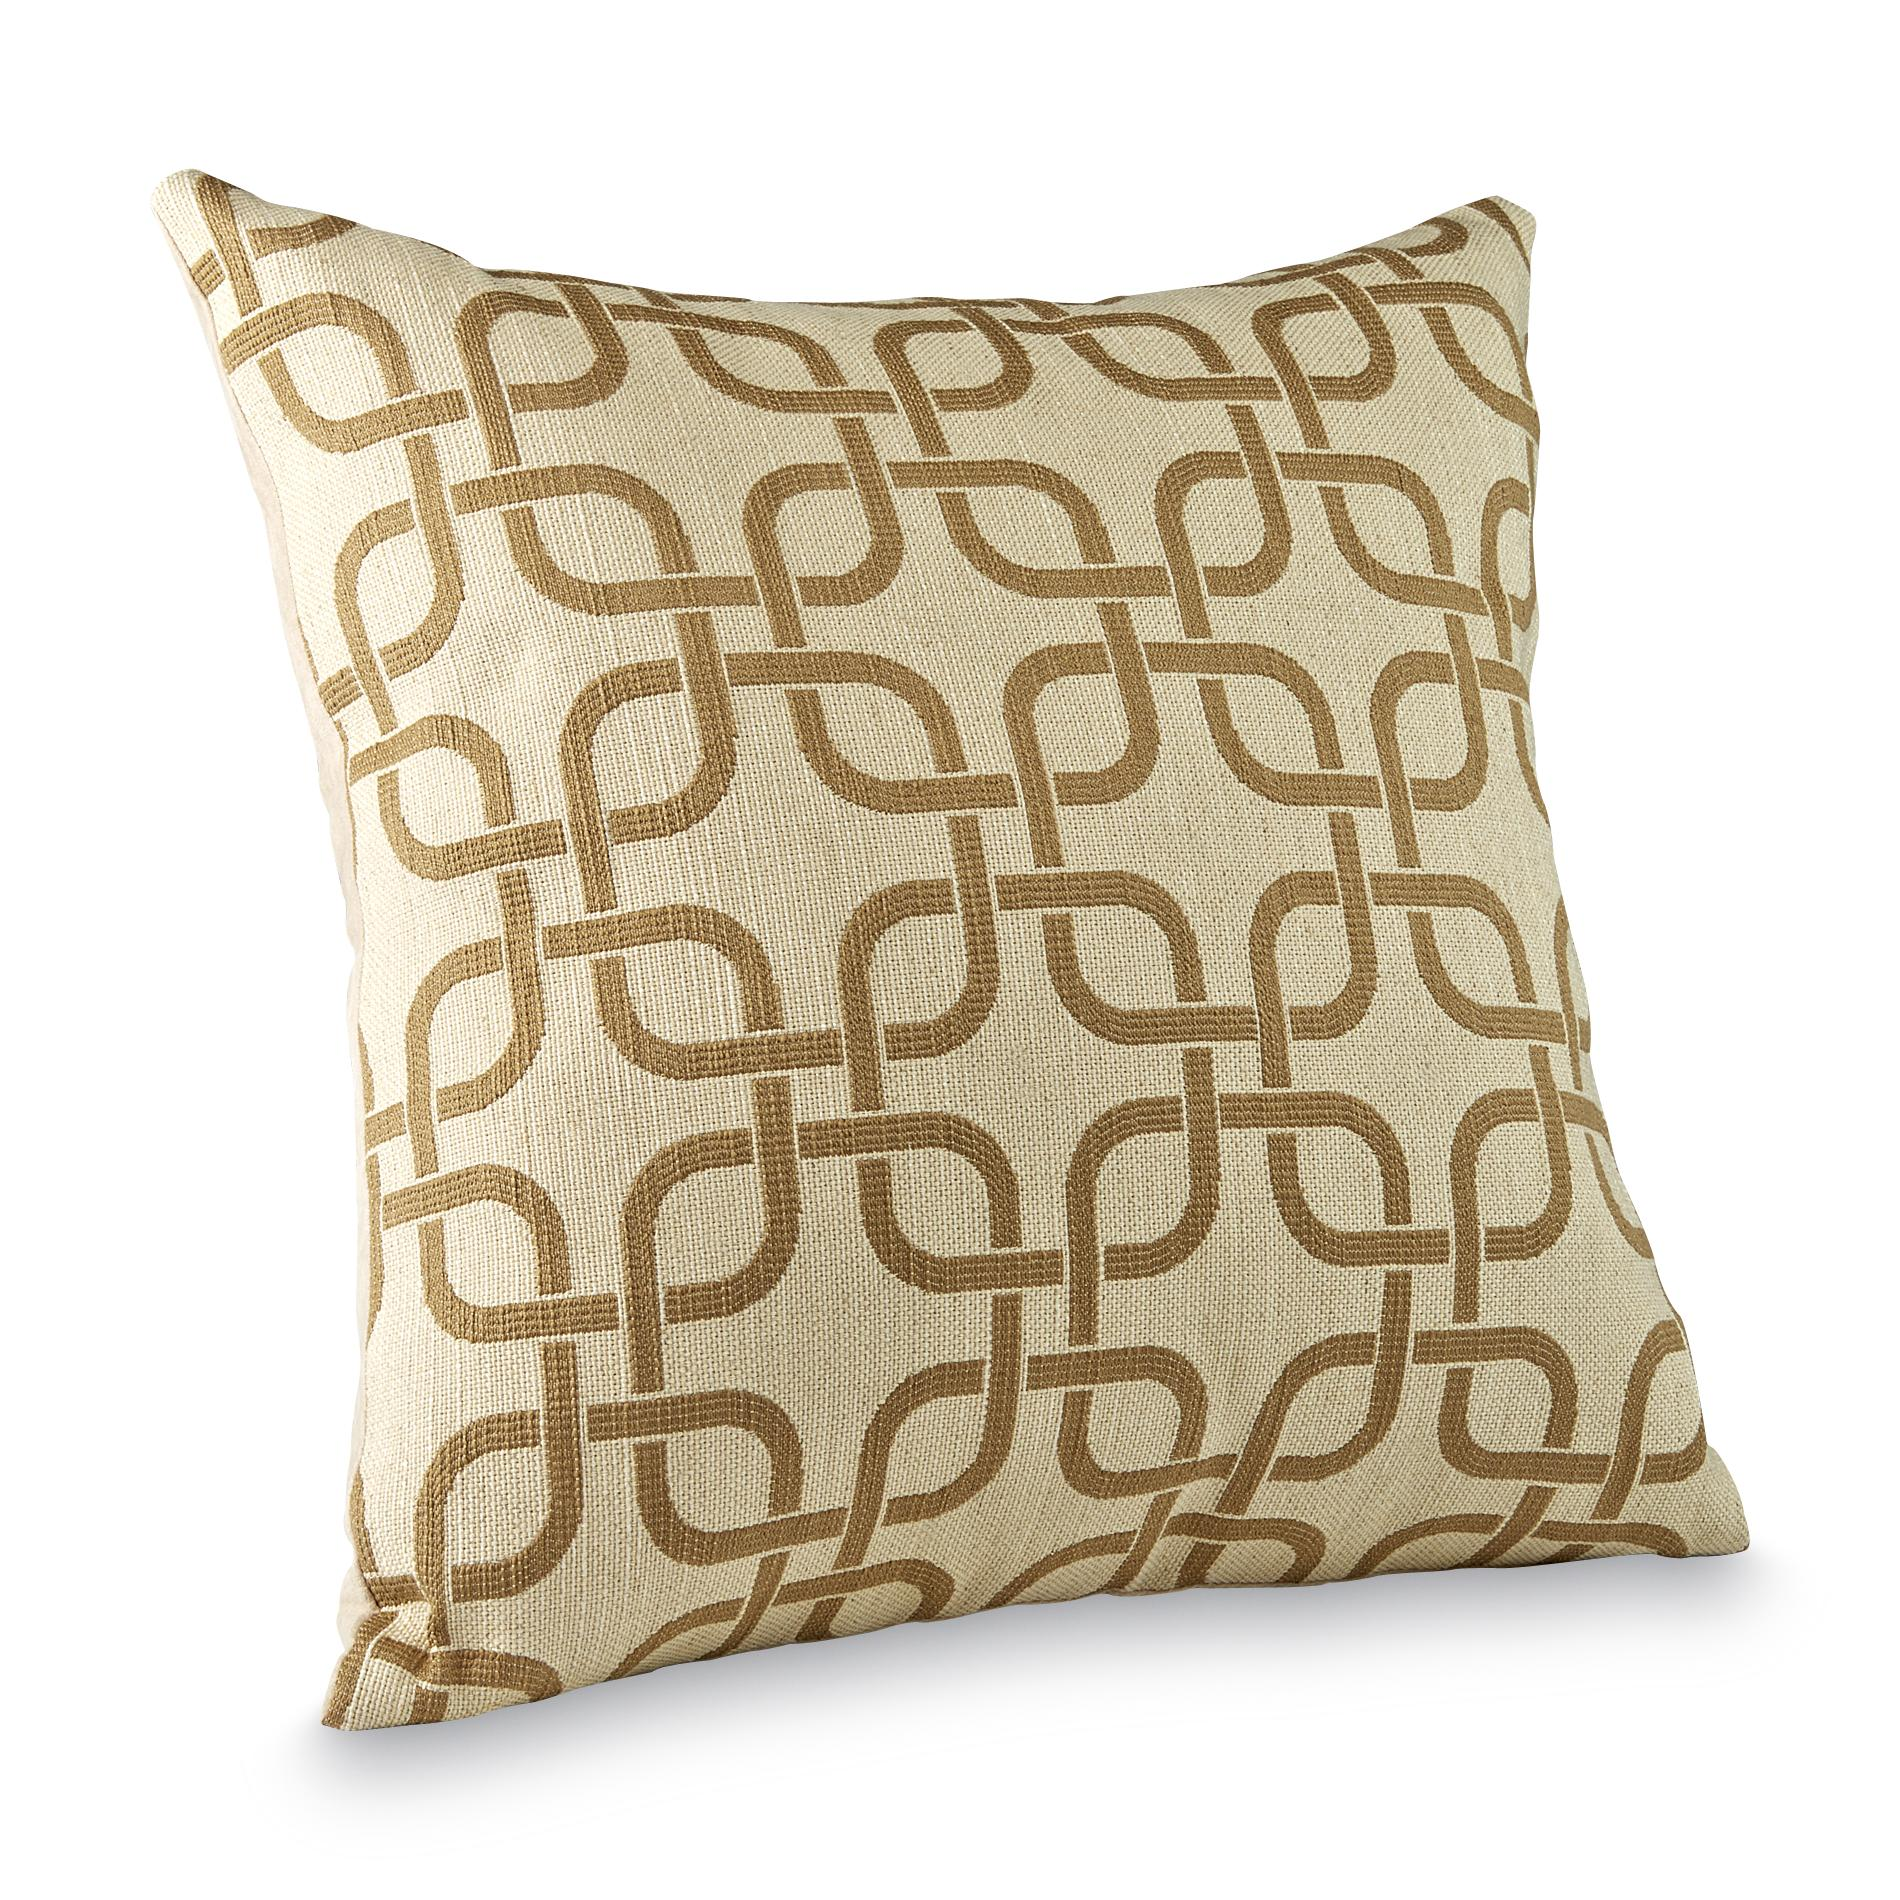 Decorative Pillows Kmart : 18